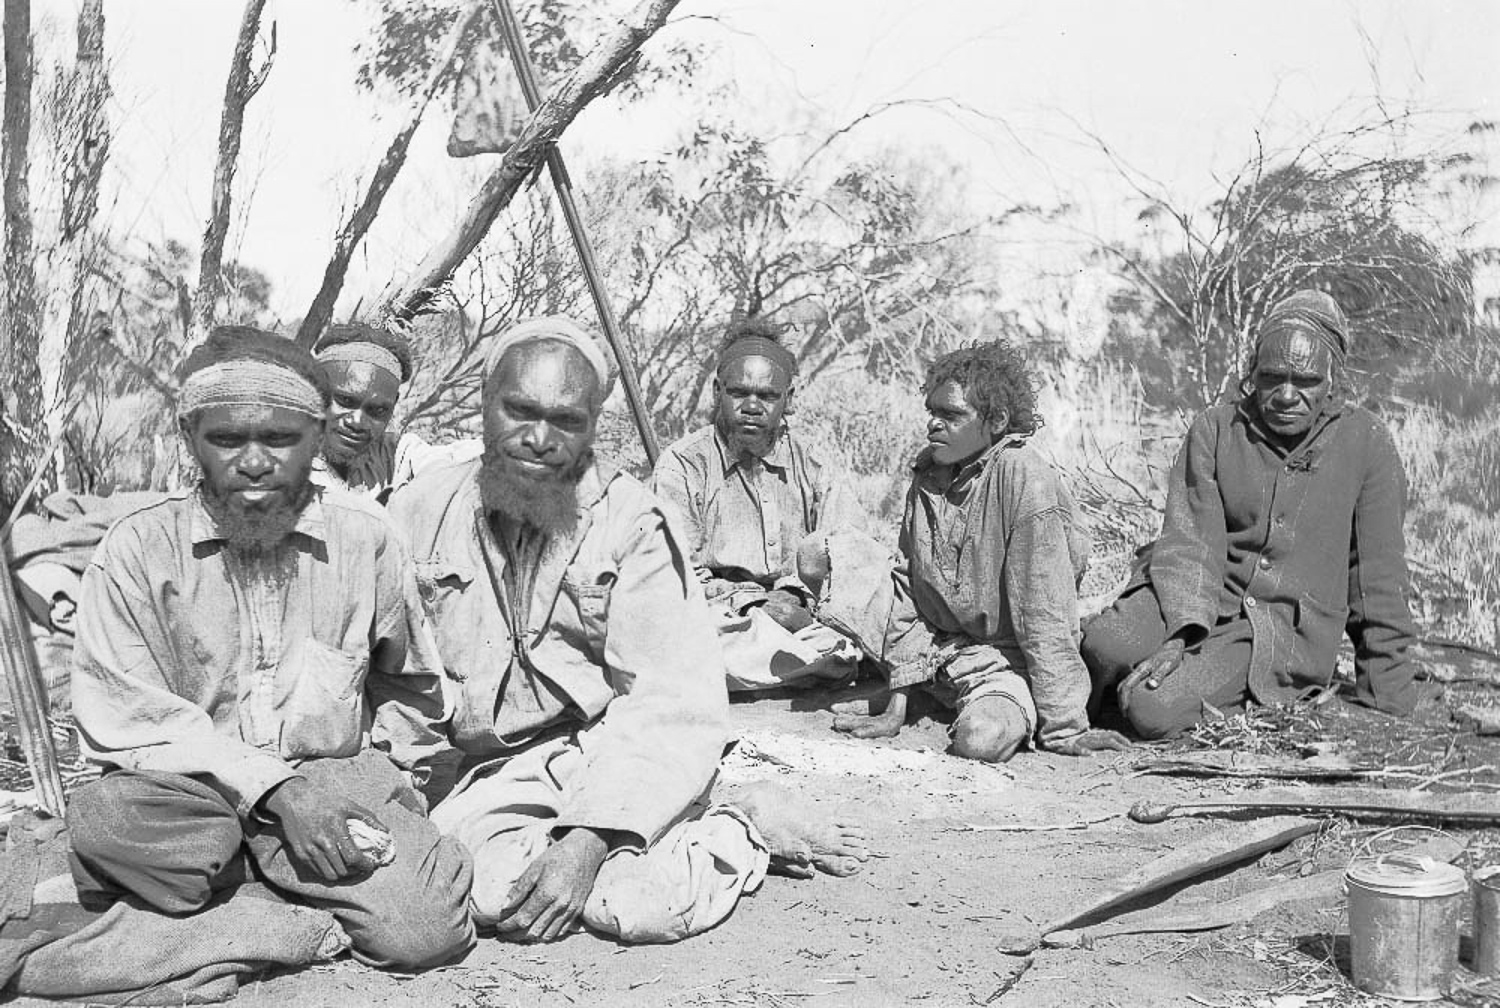 Jack Jamieson, Albert Jamieson, Frank Hogan, Arthur Jamieson and Bill Jamieson with tracker Jimmy Maadi (right) at the ration station, wearing their first set of clothes. Anangu were given western names by the missionaries, as their Indigenous names were deemed too difficult to pronounce. Families were also split up due to a lack of understanding about complex kinship relationships held by Anangu.